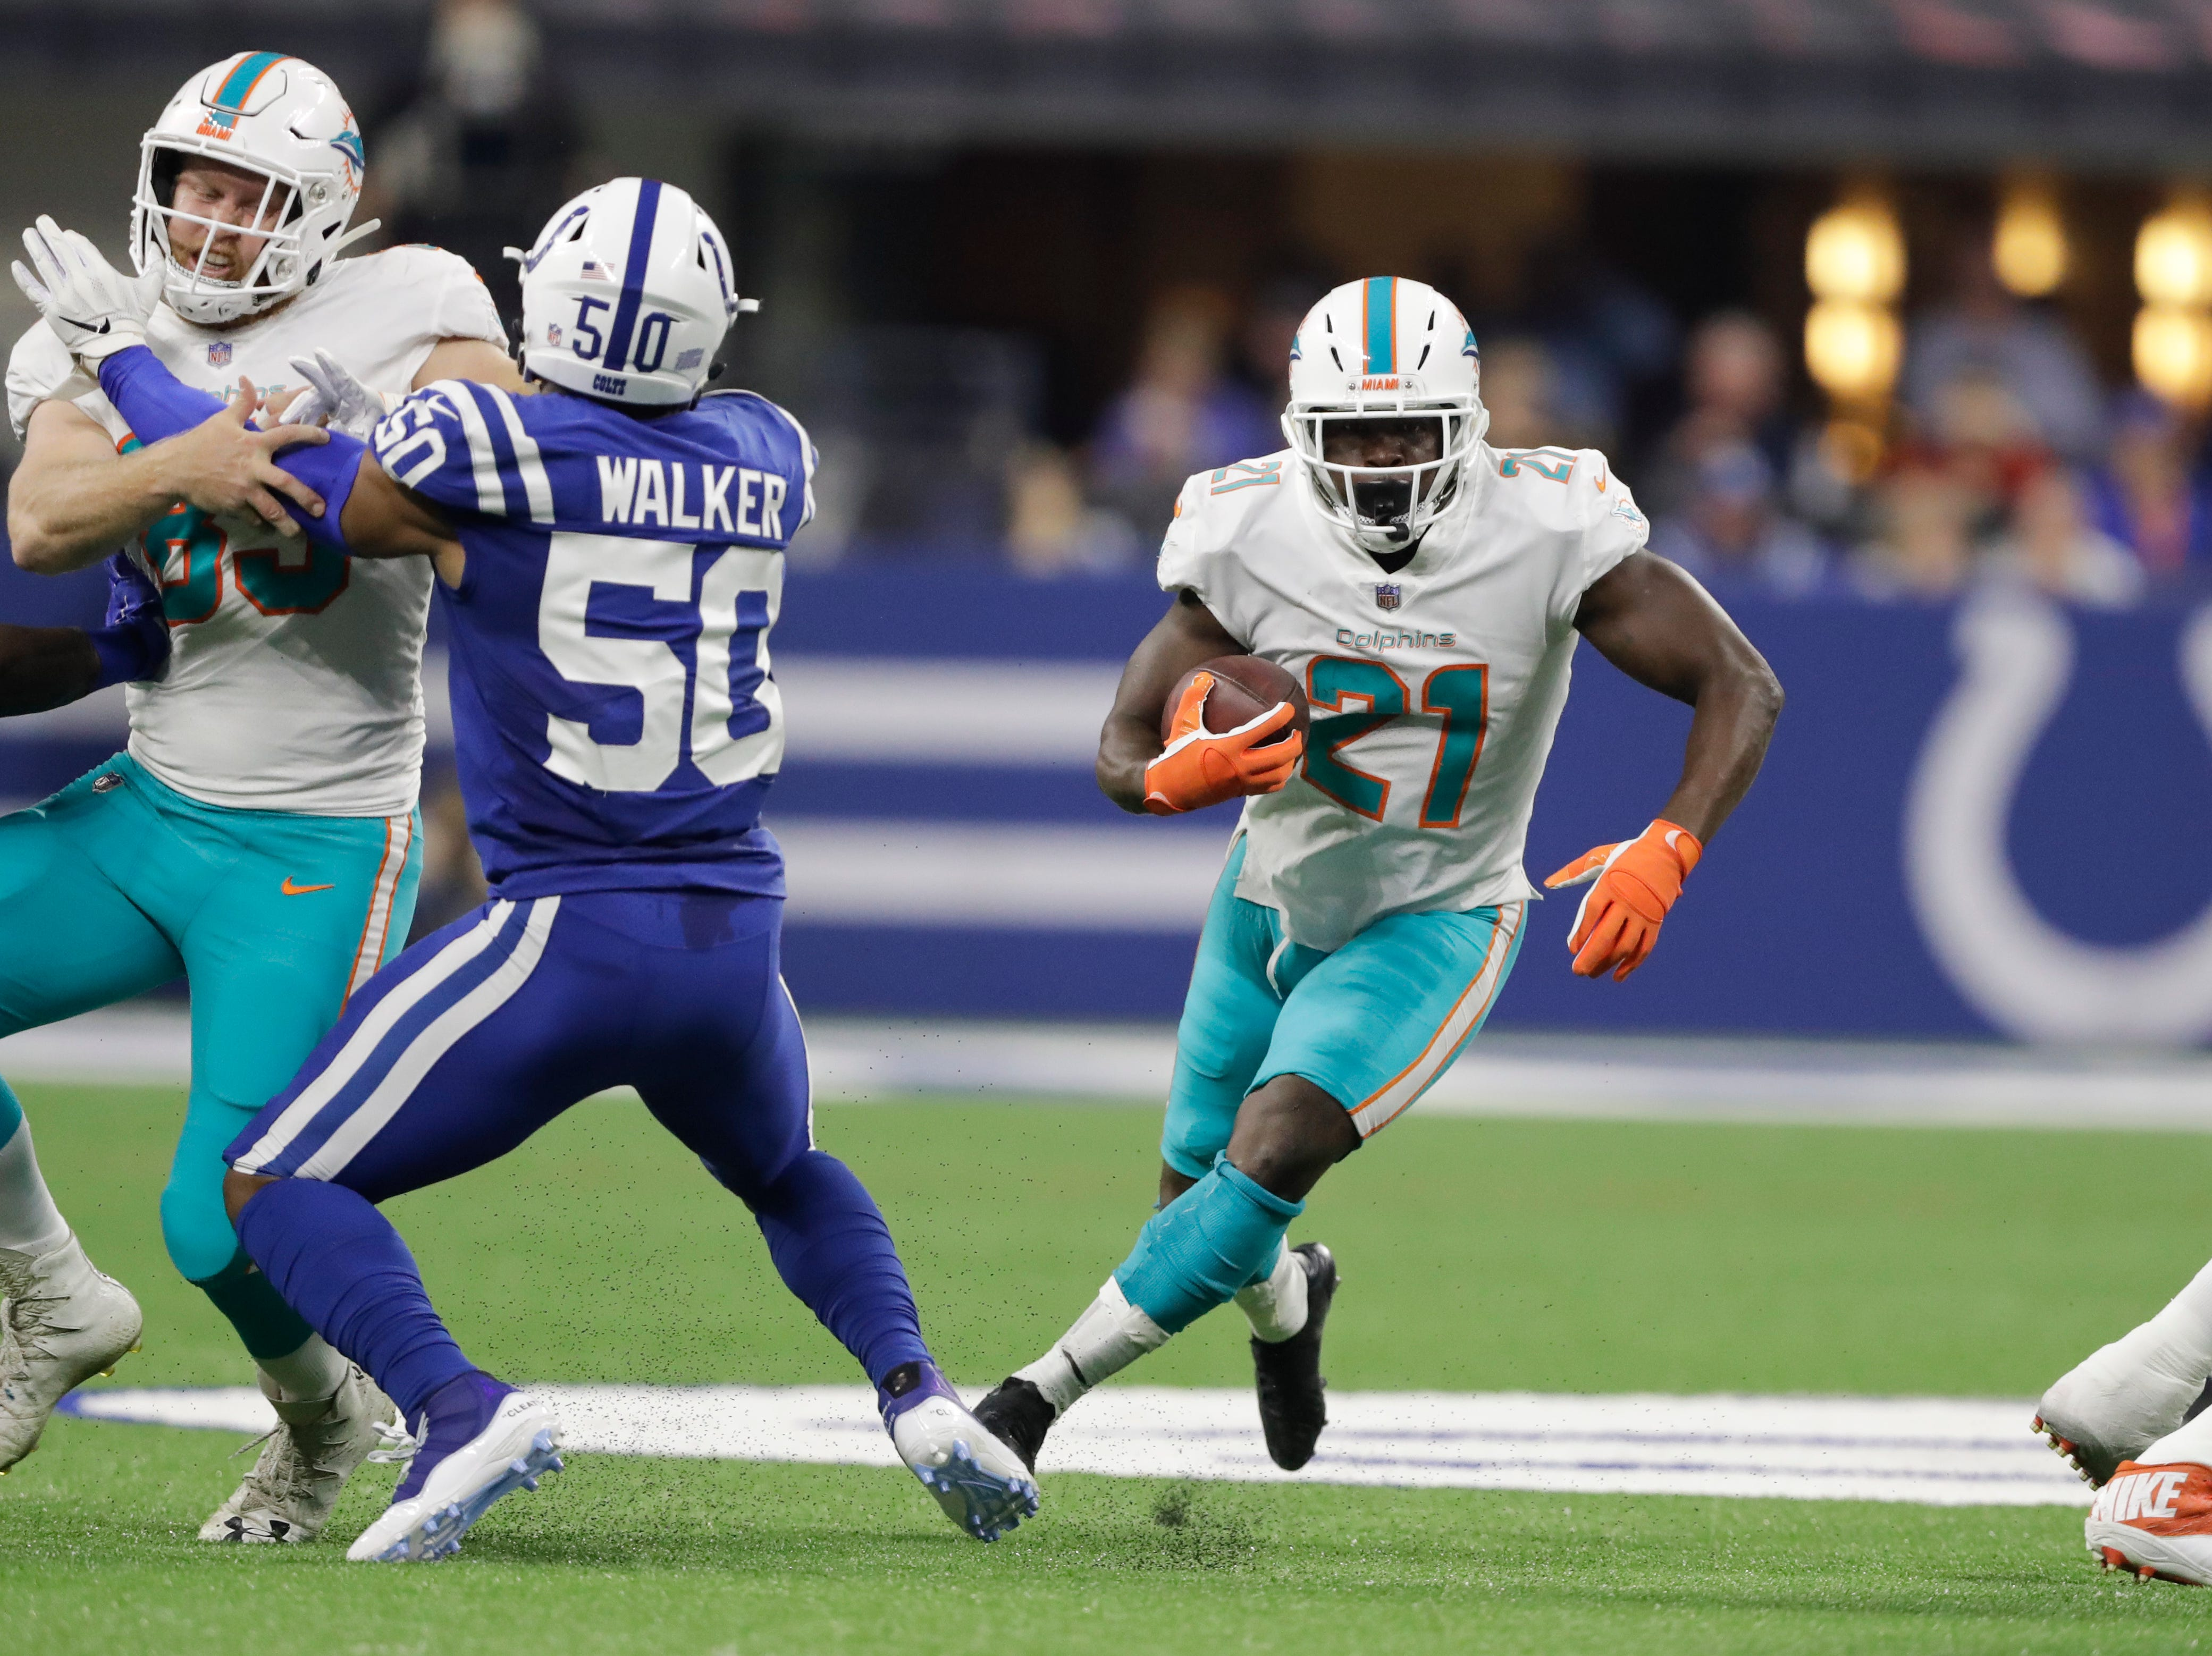 Miami Dolphins running back Frank Gore (21) runs against the Indianapolis Colts. Gore, 35, who faces the Buffalo Bills on Sunday, is fourth on the NFL's career rushing list with 14,621 yards.